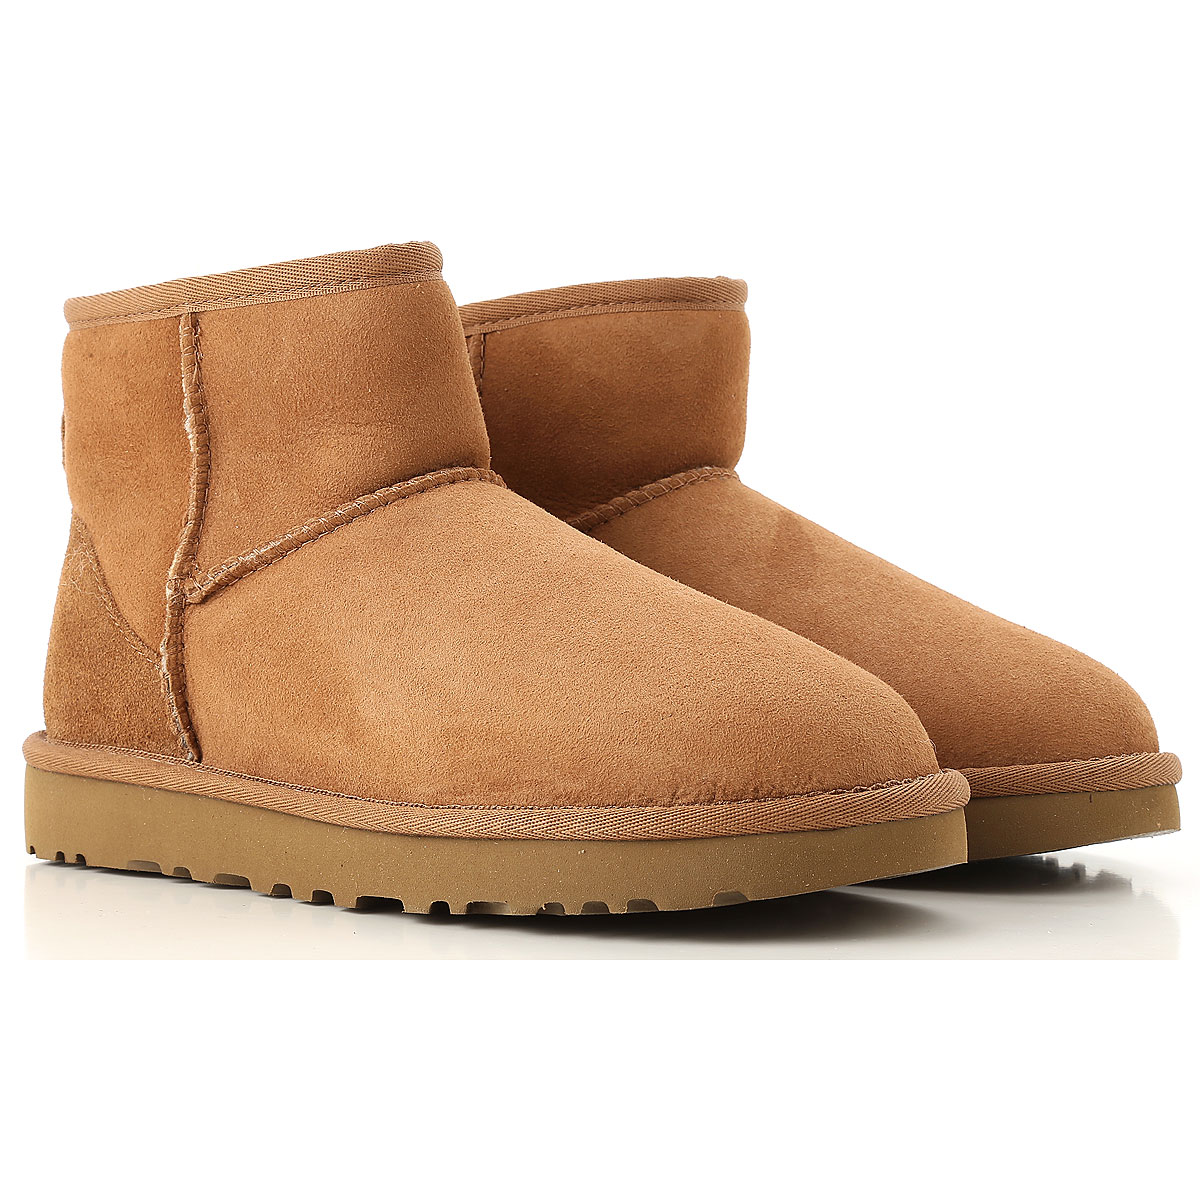 UGG Boots for Women, Booties On Sale, Chestnut, suede, 2019, USA 5 UK 3 5 EU 36 JAPAN 220 USA 6 UK 4 5 EU 37 JAPAN 230 USA 7 UK 5 5 EU 38 JA